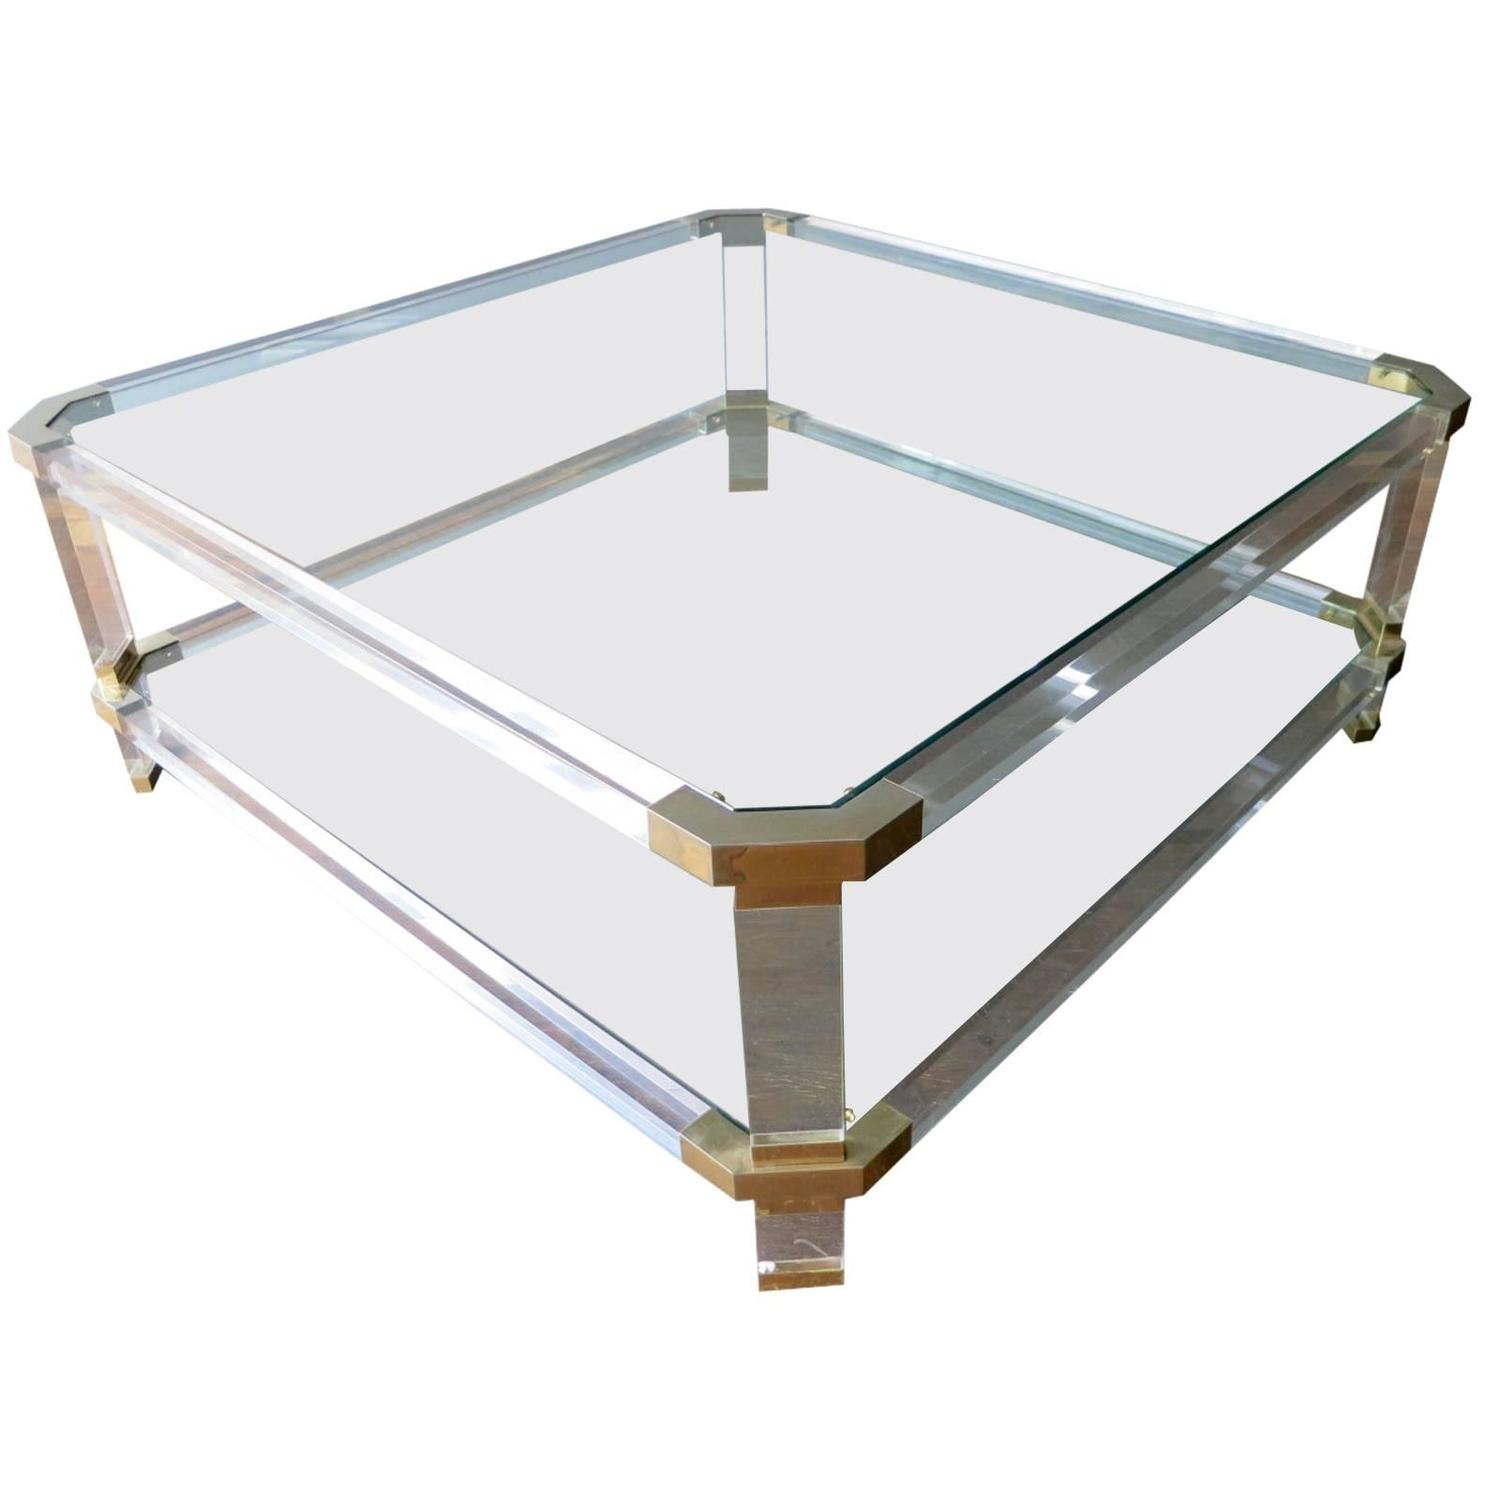 Large French Coffee Table: Large French Lucite And Brass Coffee Table At 1stdibs